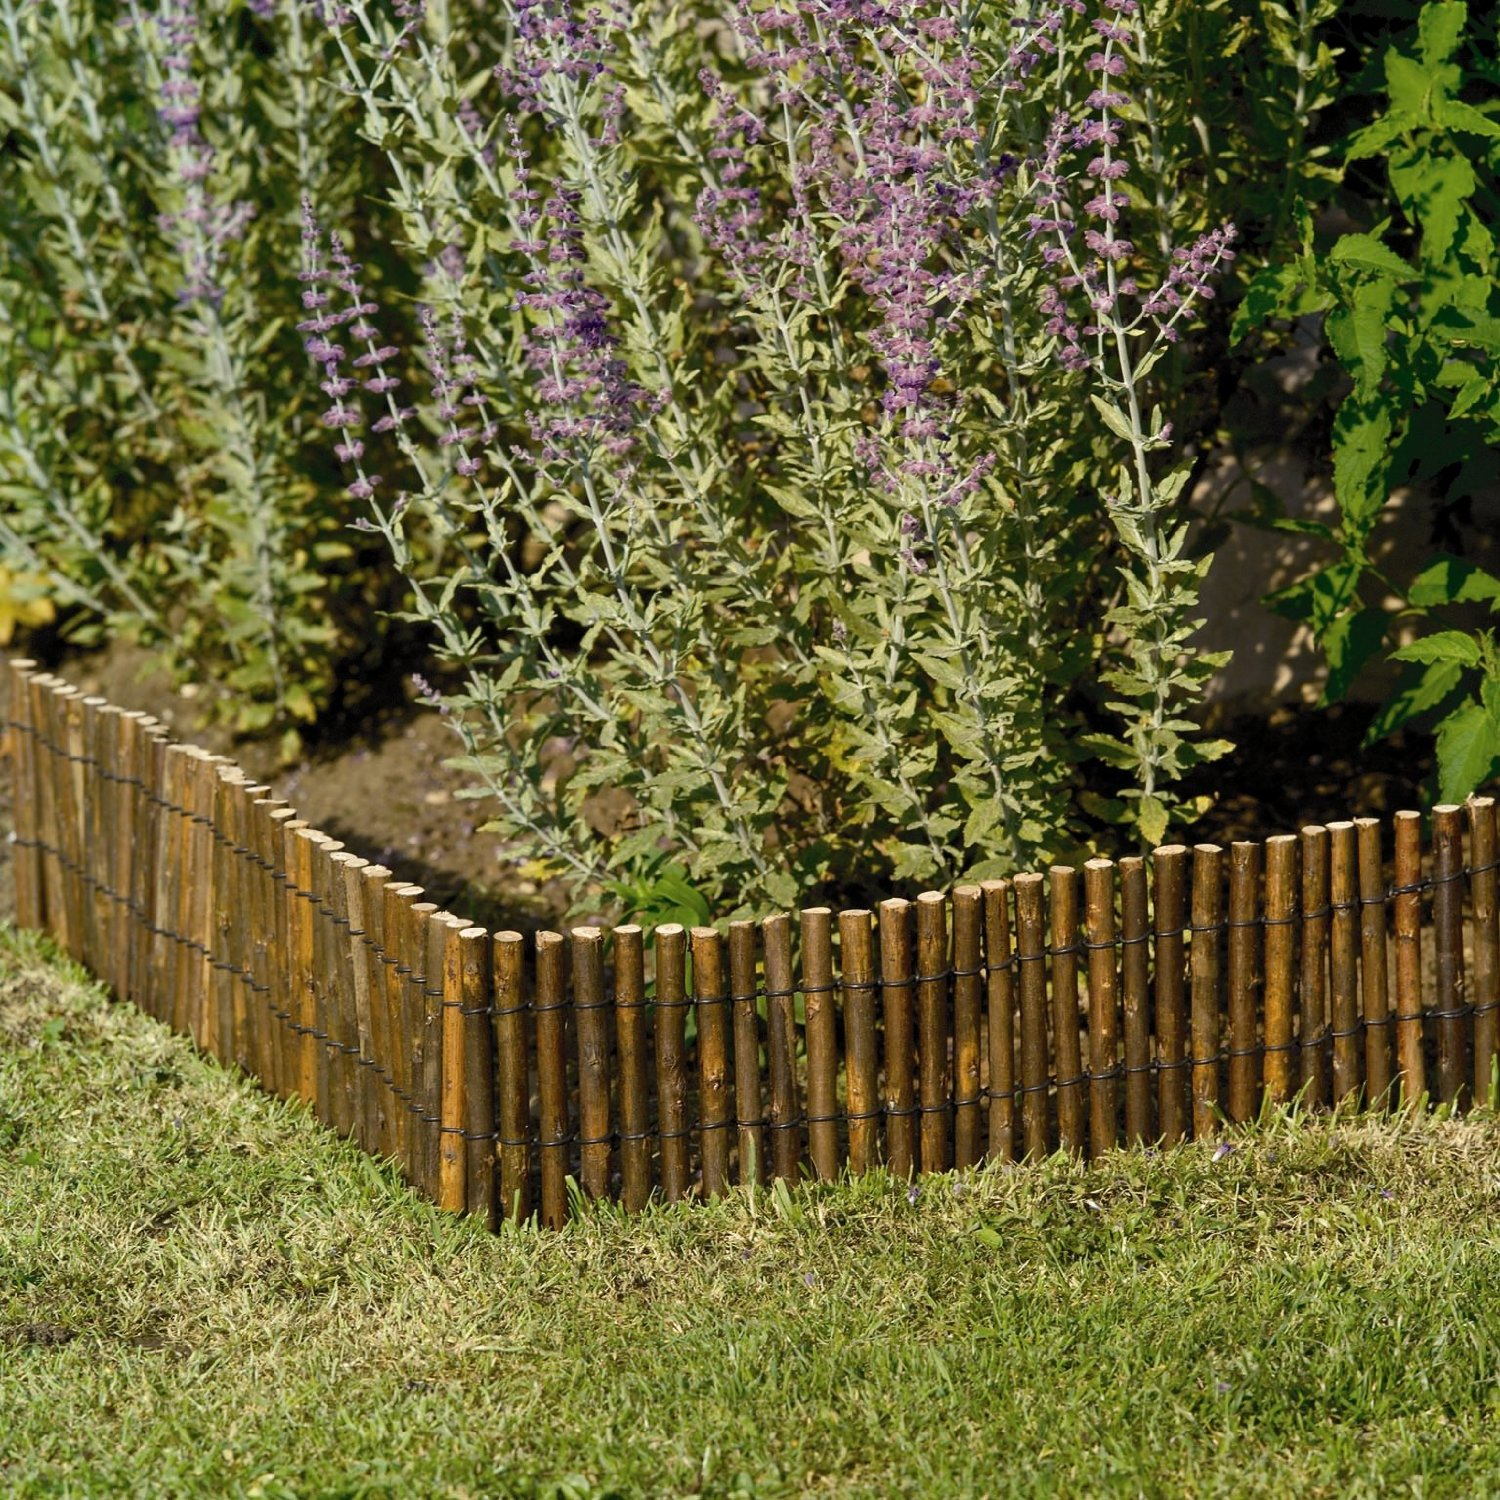 Willow lawn border edging 2m x 15cm flexible garden for Path and border edging